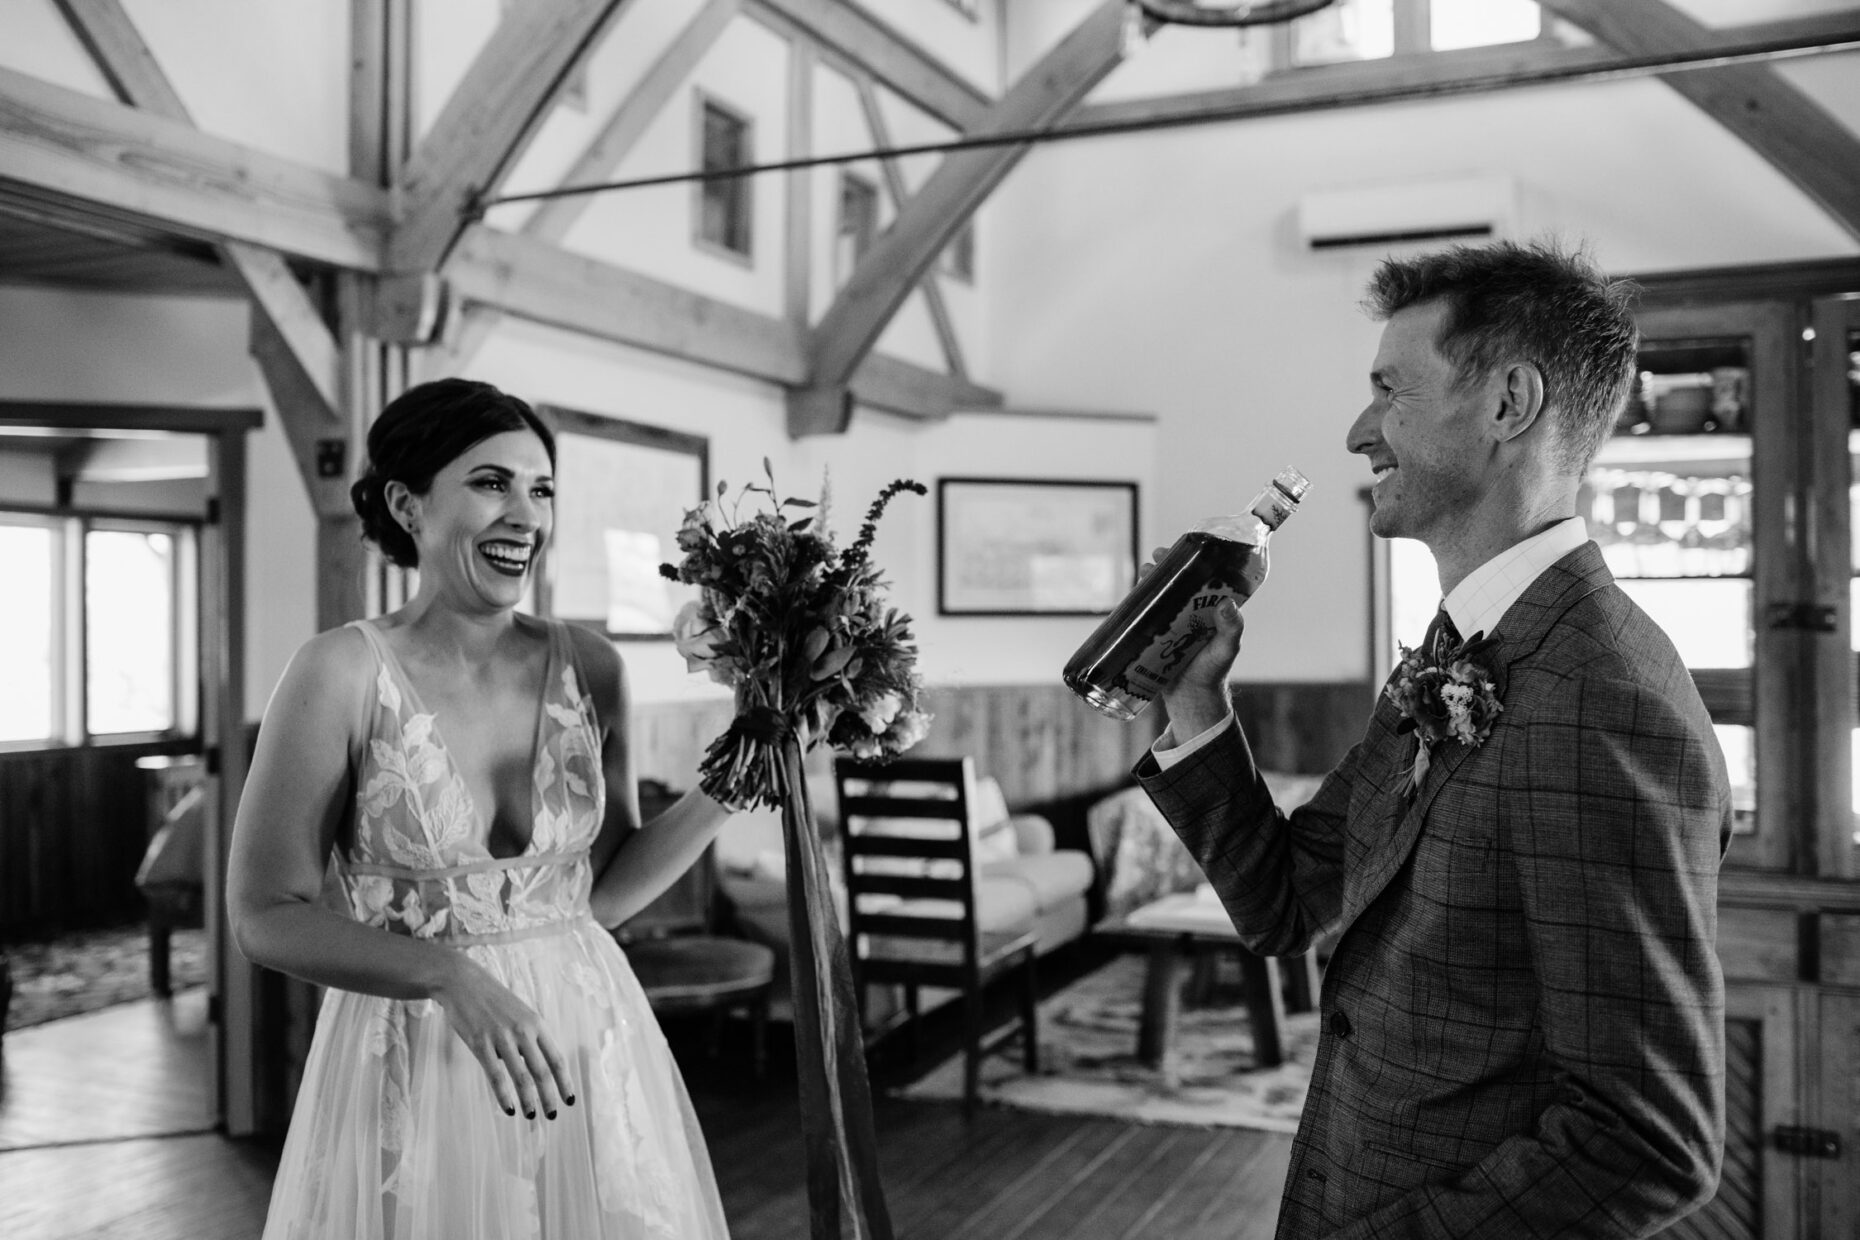 Fun candid photo of bride and groom drinking together on their wedding day